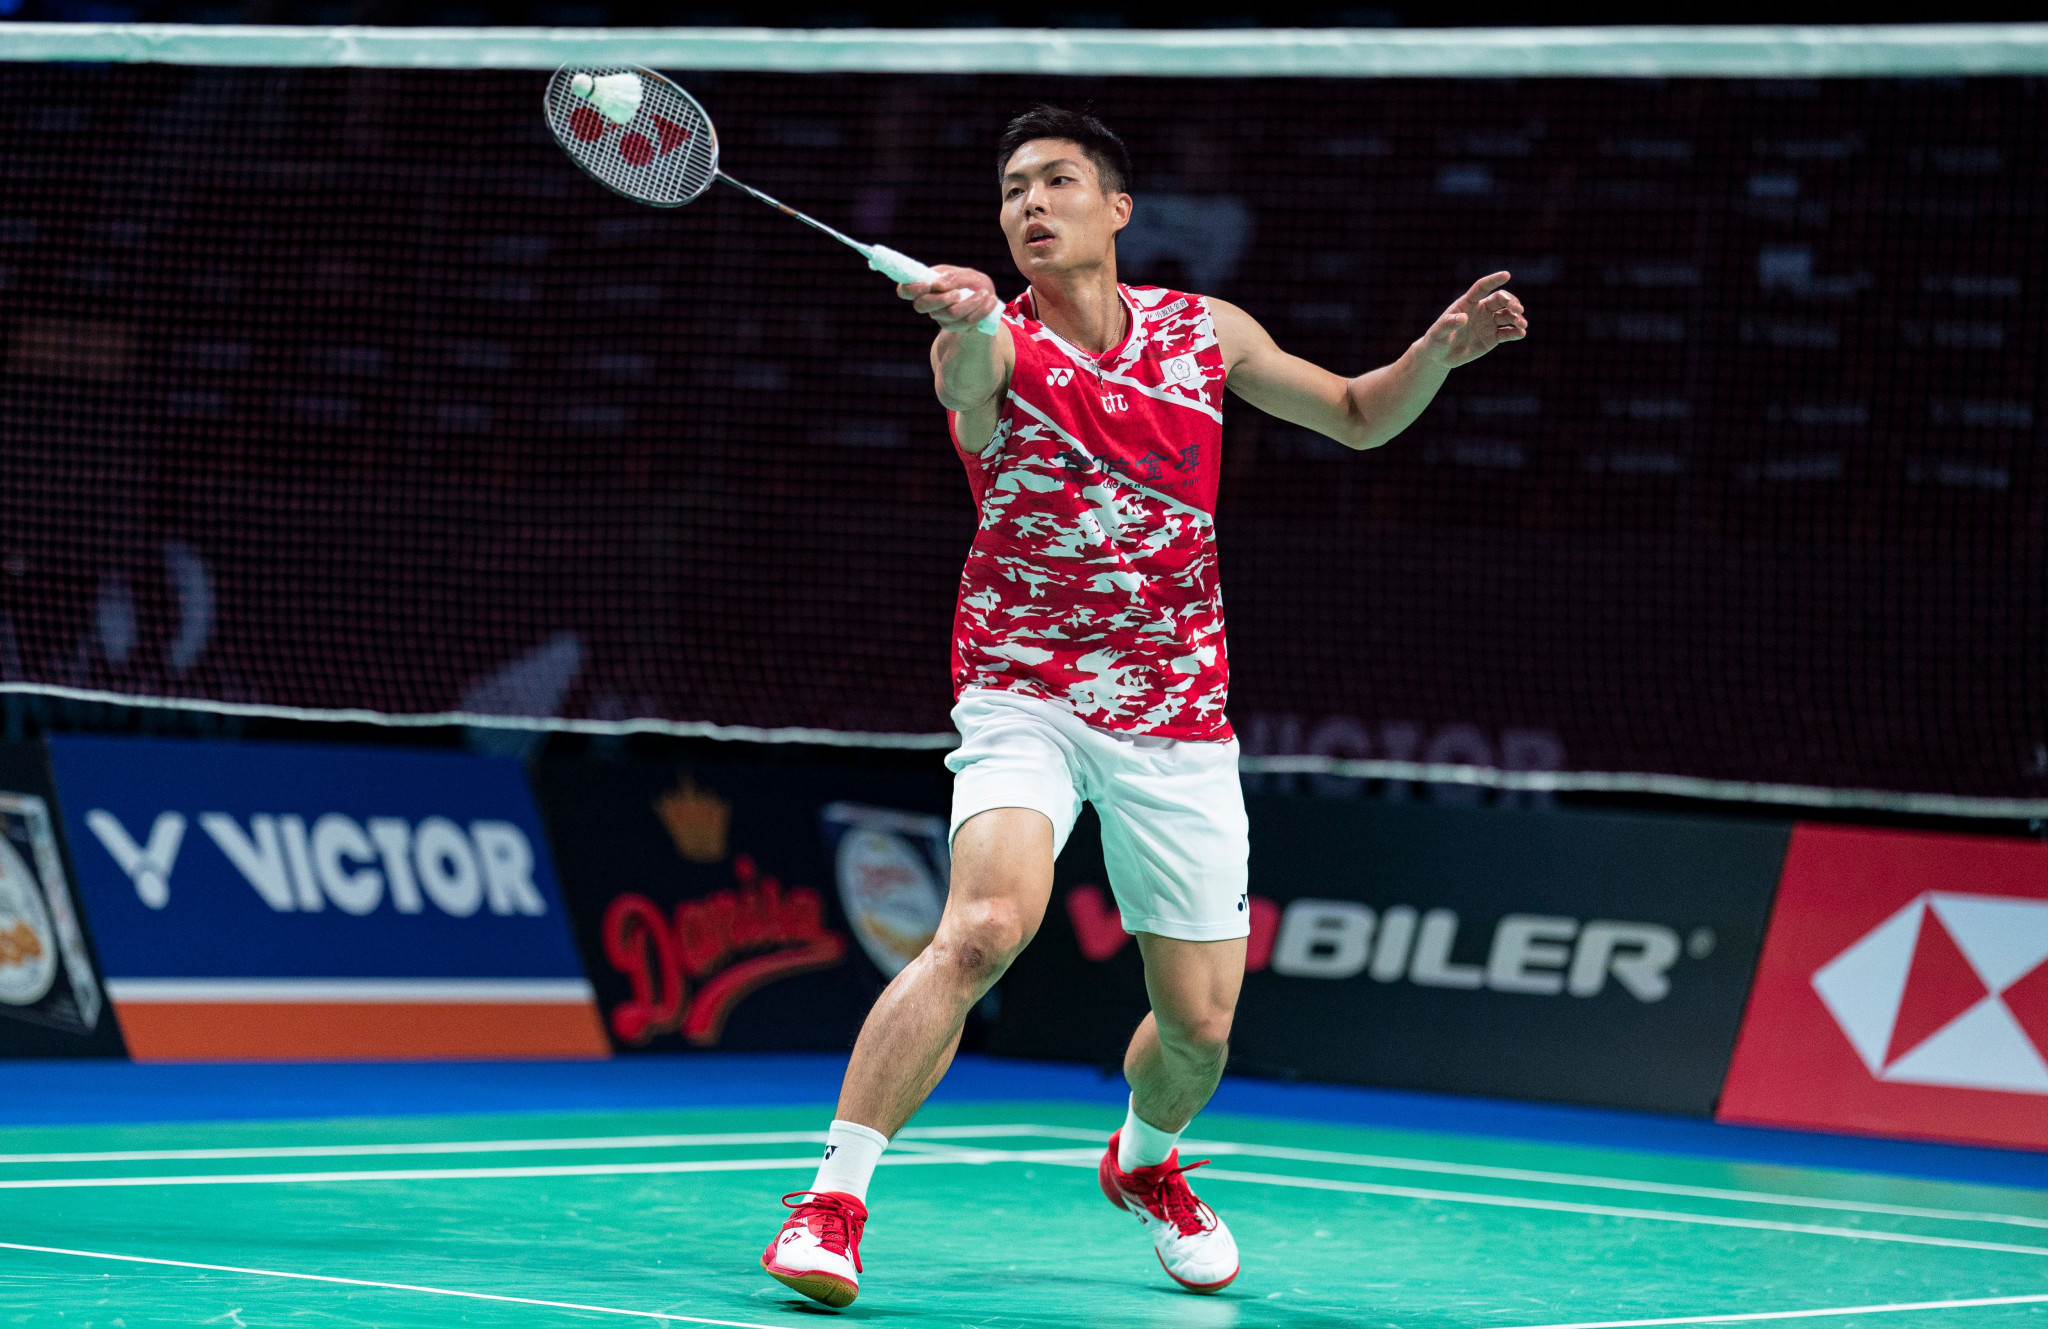 Chou advances to quarter-finals at BWF Denmark Open in Odense